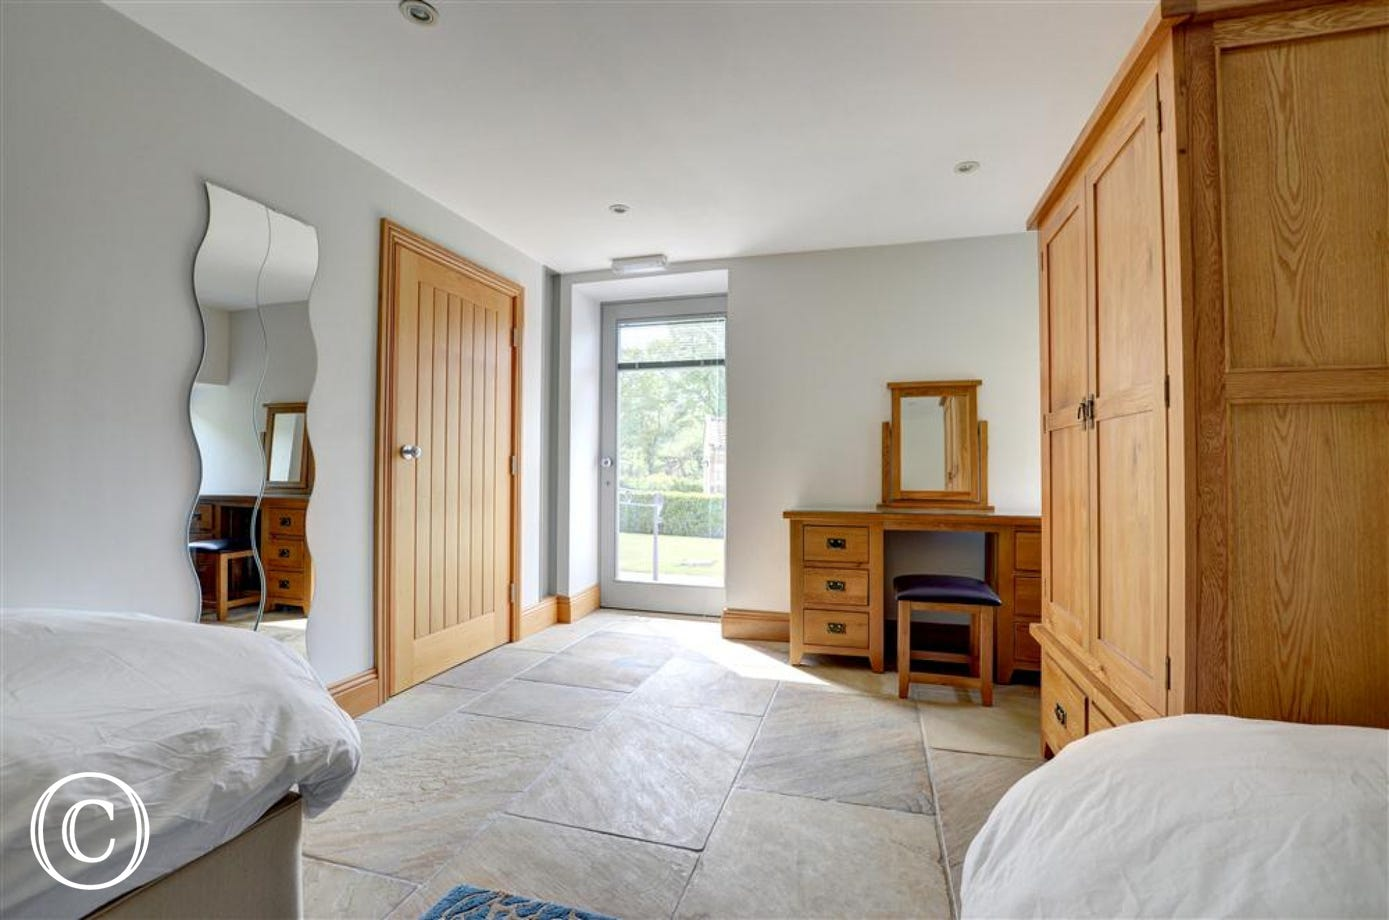 Bedroom 1 is spacious and has a French door allowing acess directly from the outside.